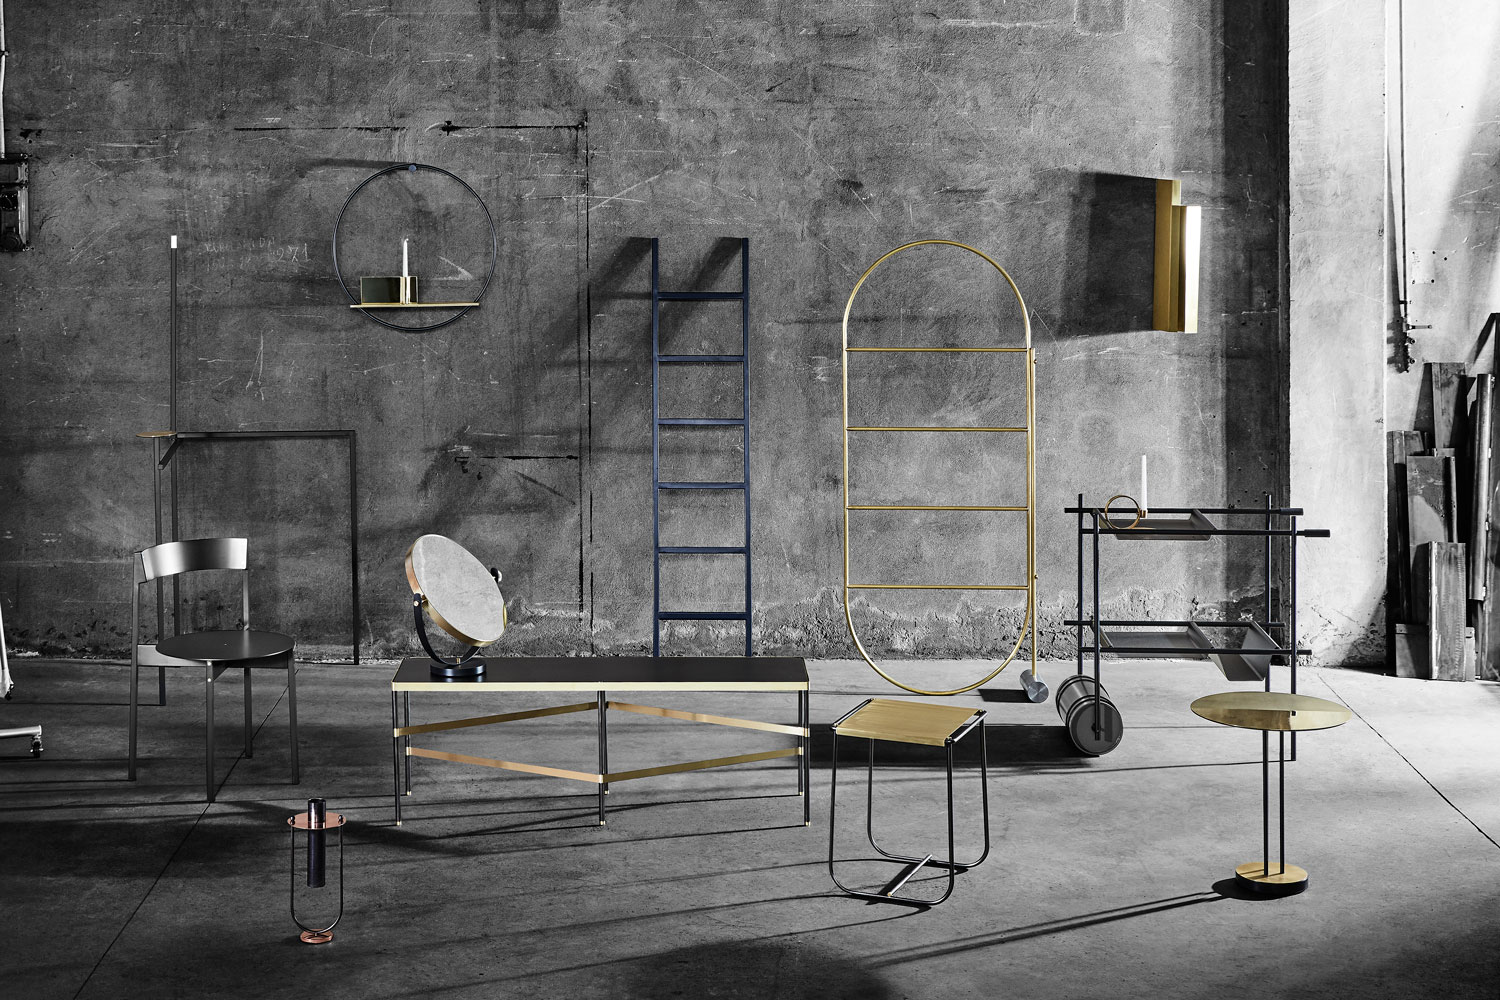 Mingardo 39 s the iconic handicraft collection launched for Design week 2017